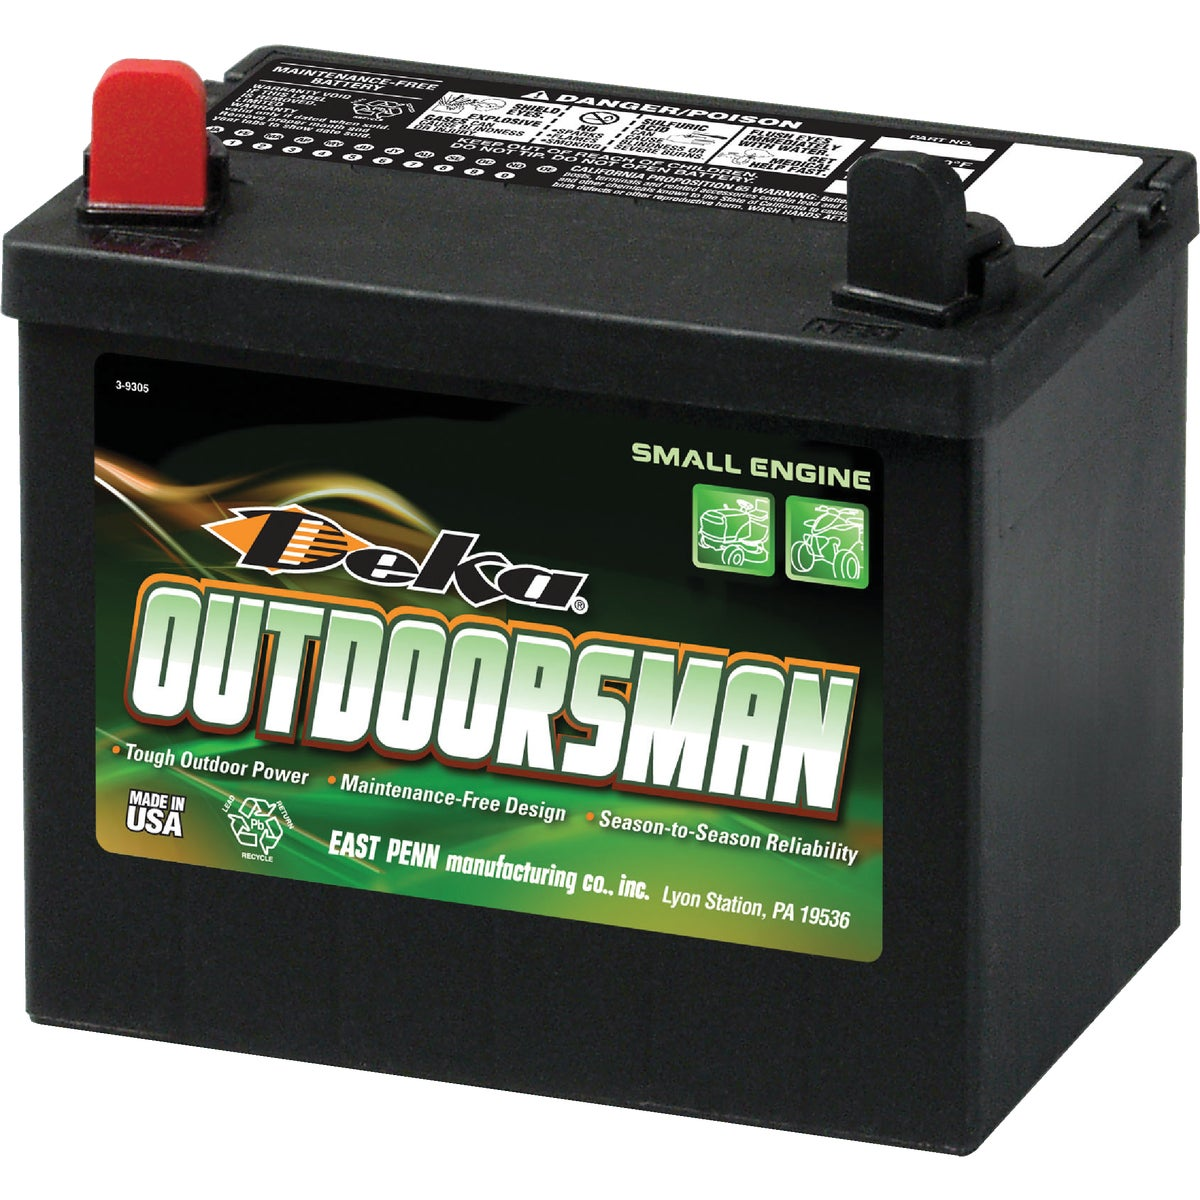 Deka Outdoorsman Small Engine Battery, 8U1L